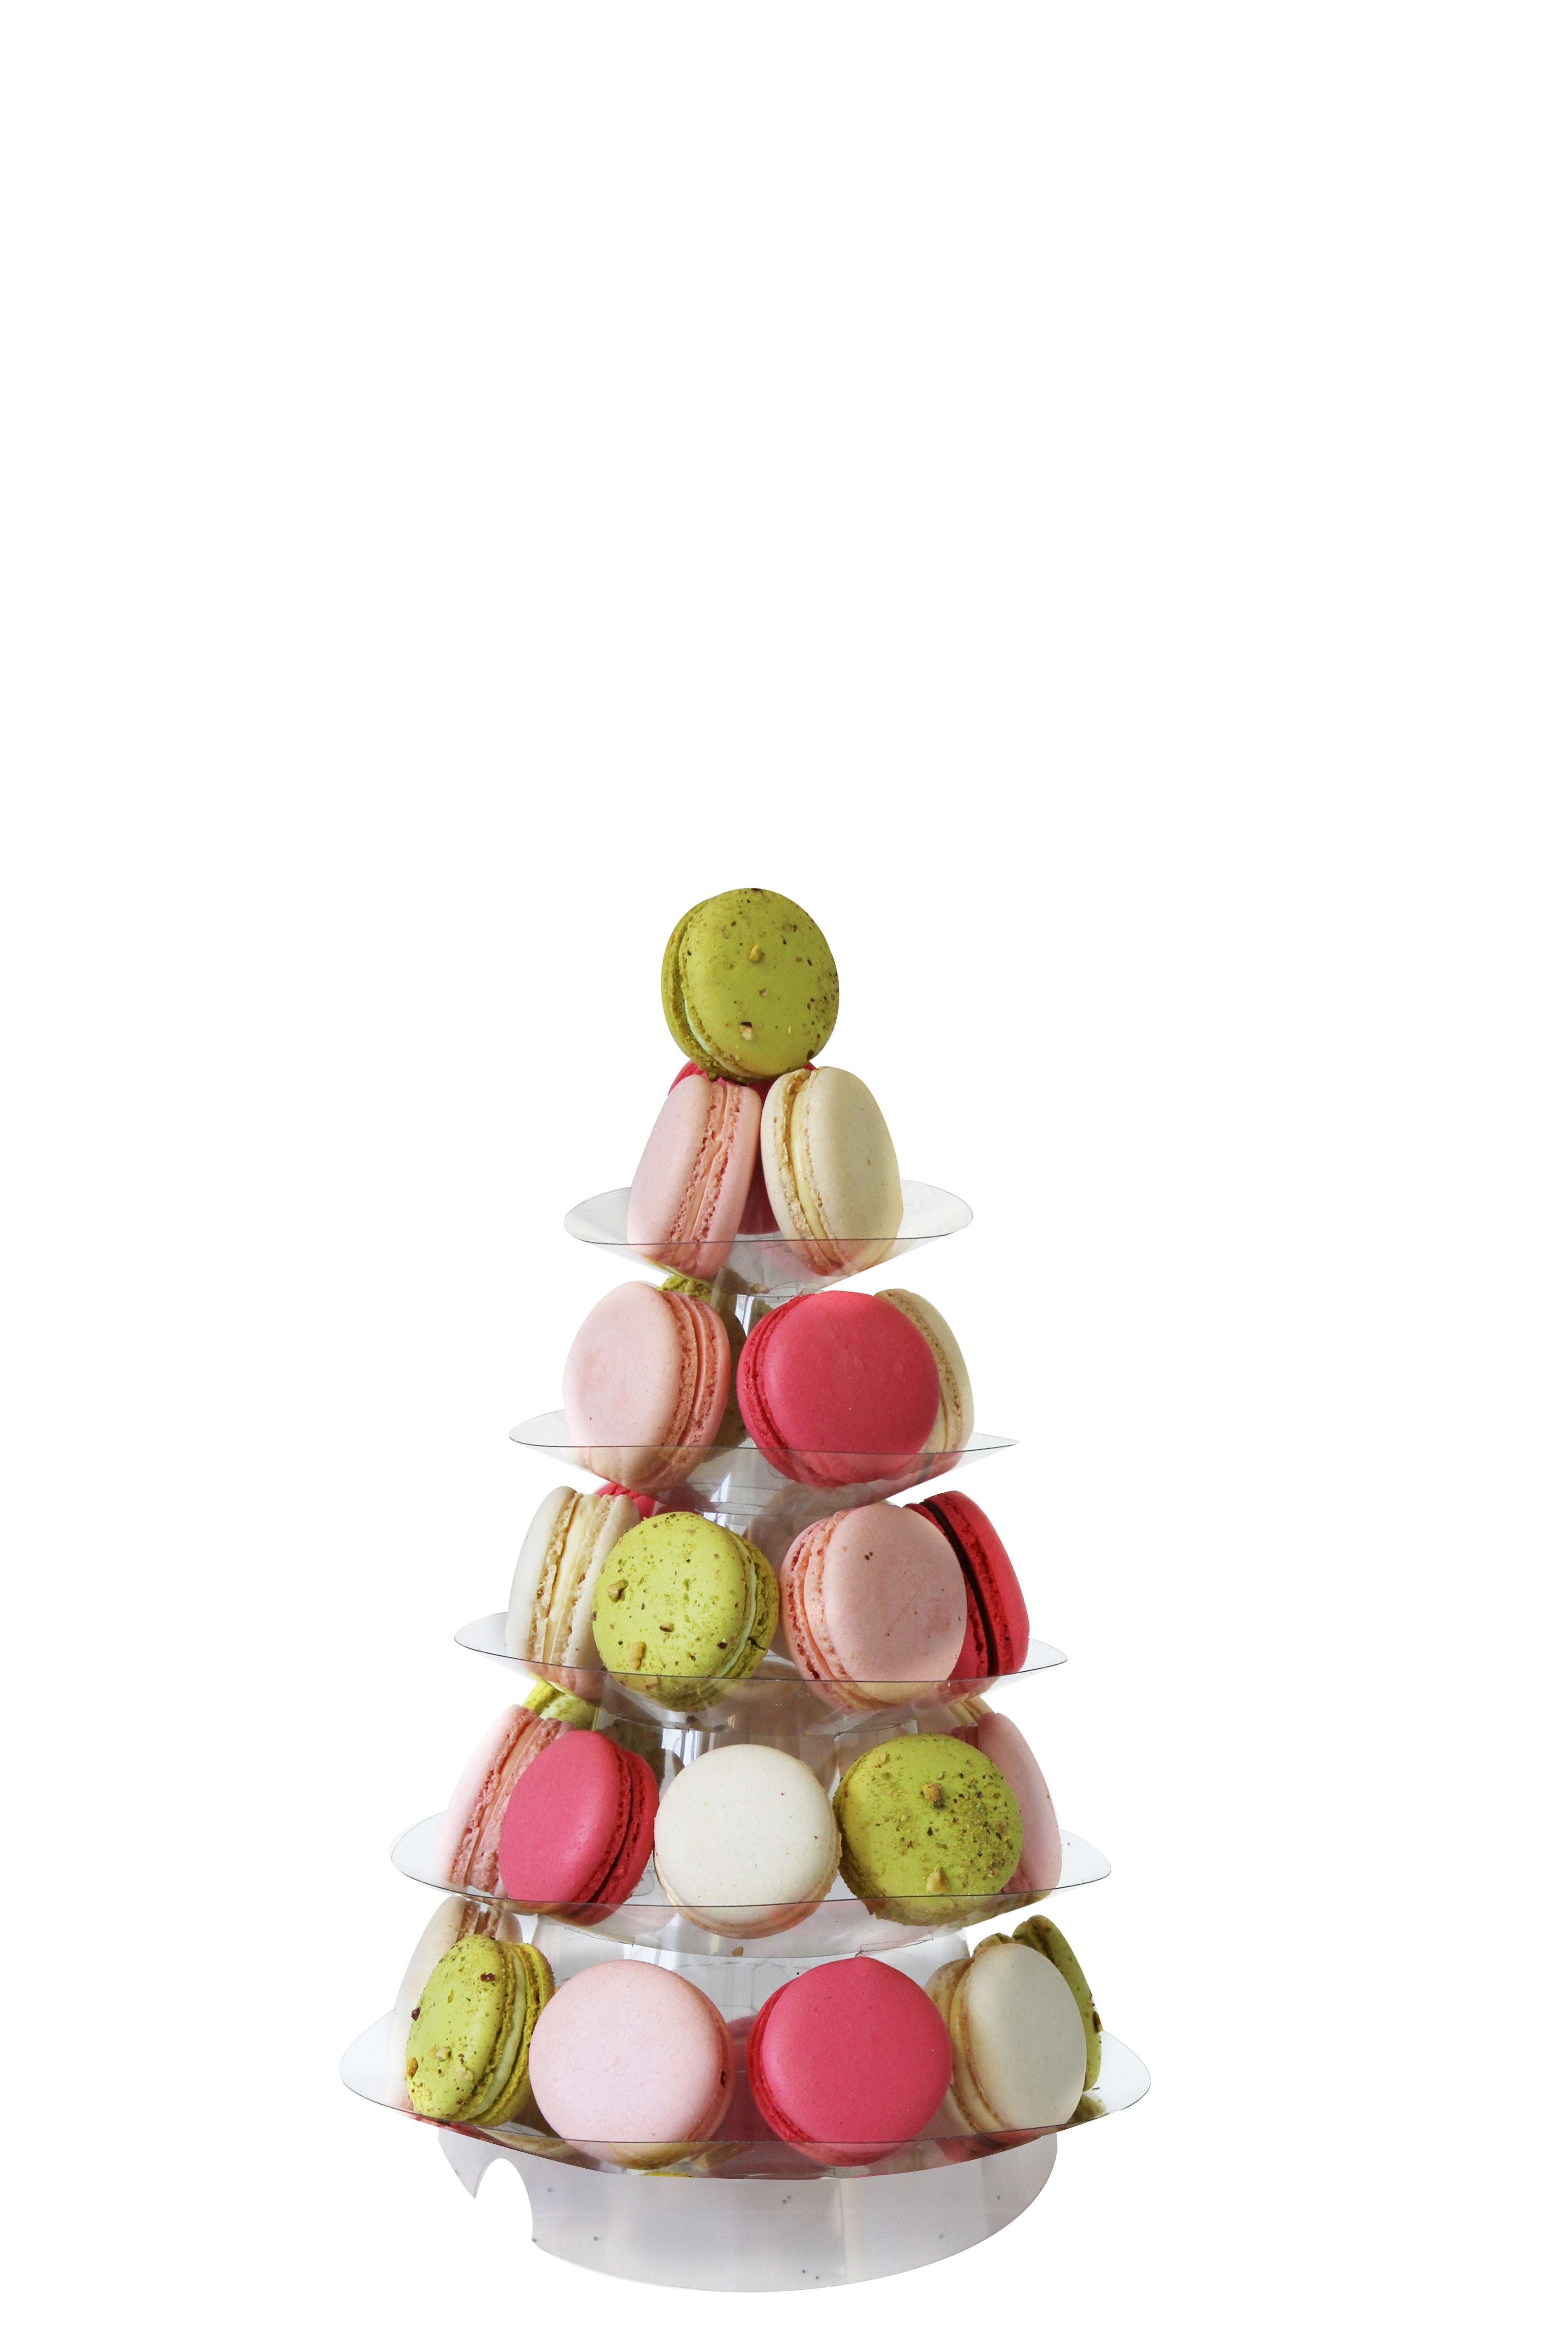 Macaron tower - Create your own! (Local delivery)